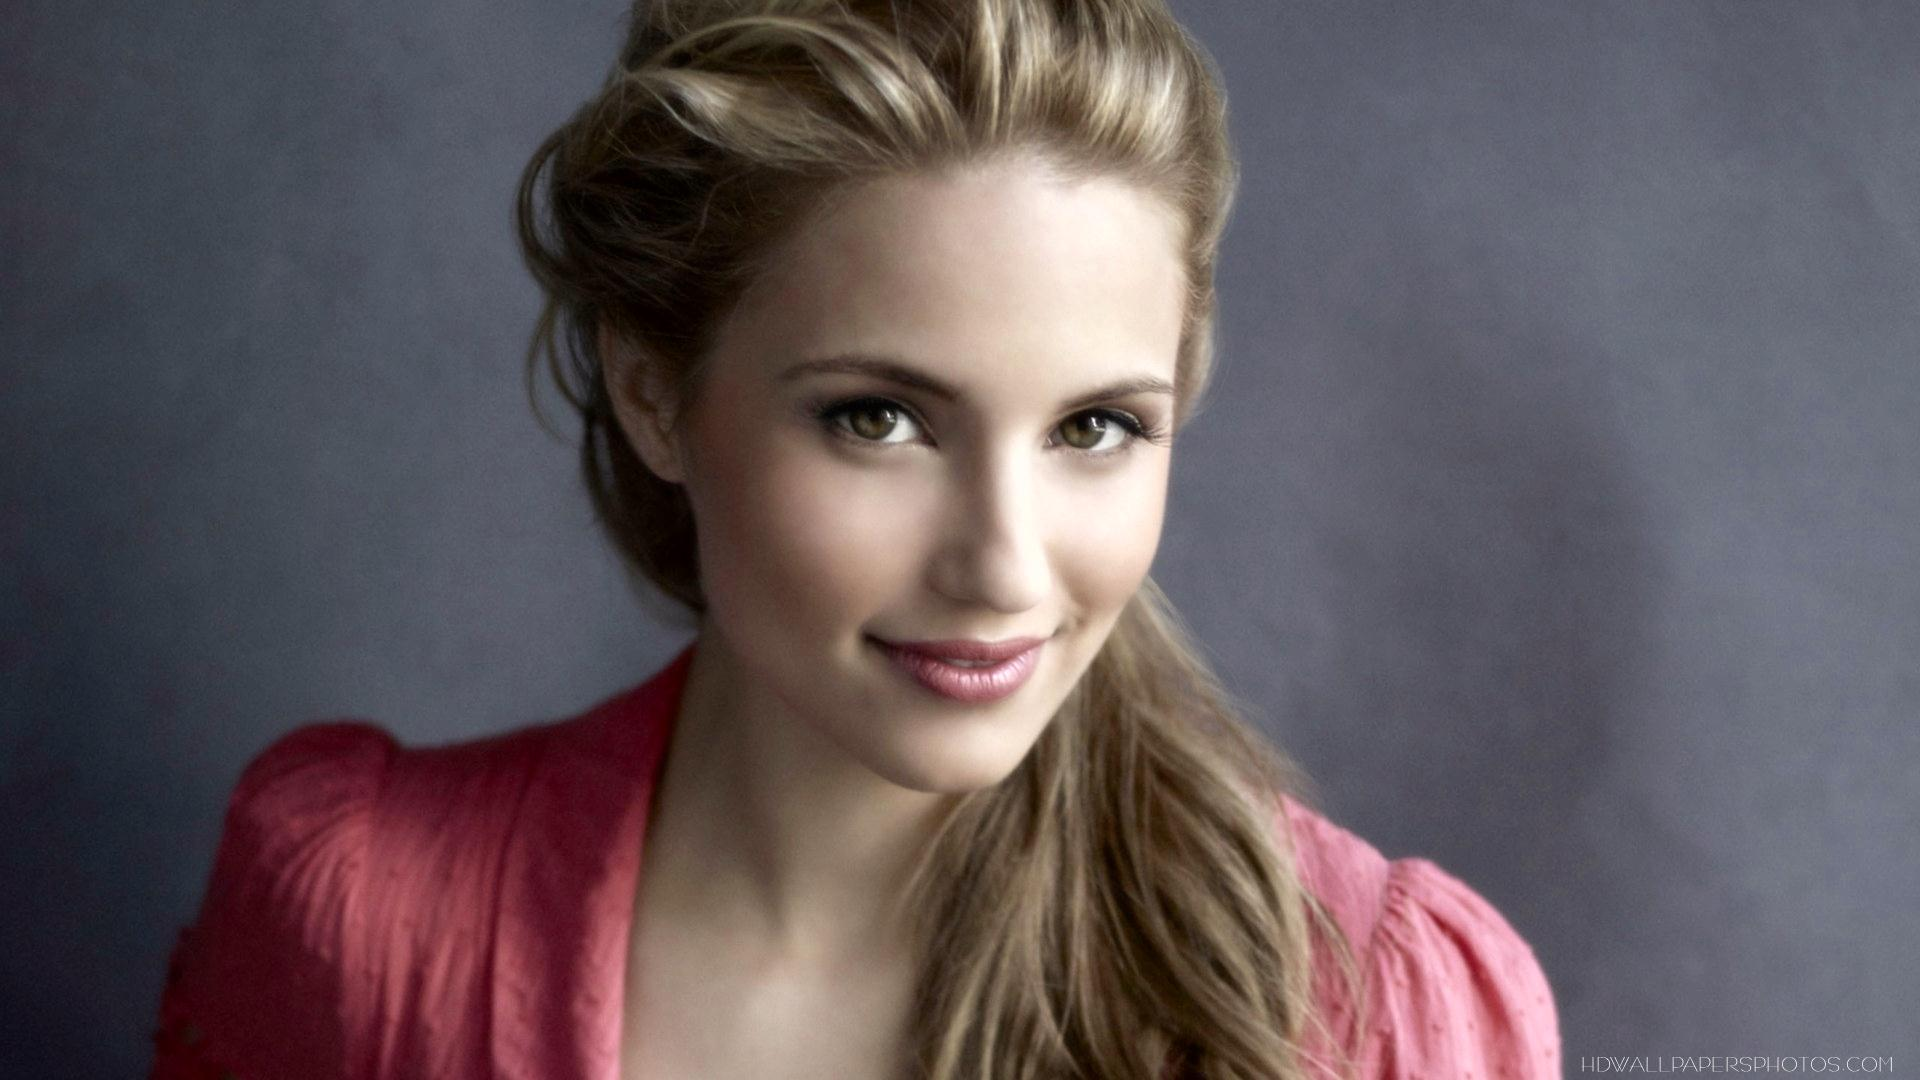 dianna agron boyfrienddianna agron instagram, dianna agron фото, dianna agron vk, dianna agron gif hunt, dianna agron png, dianna agron site, dianna agron style, dianna agron twitter, dianna agron and cory monteith, dianna agron 2016, dianna agron boyfriend, dianna agron wiki, dianna agron interview, dianna agron gif tumblr, dianna agron 2015, dianna agron gallery, dianna agron films, dianna agron photo gallery, dianna agron bellazon, dianna agron sebastian stan